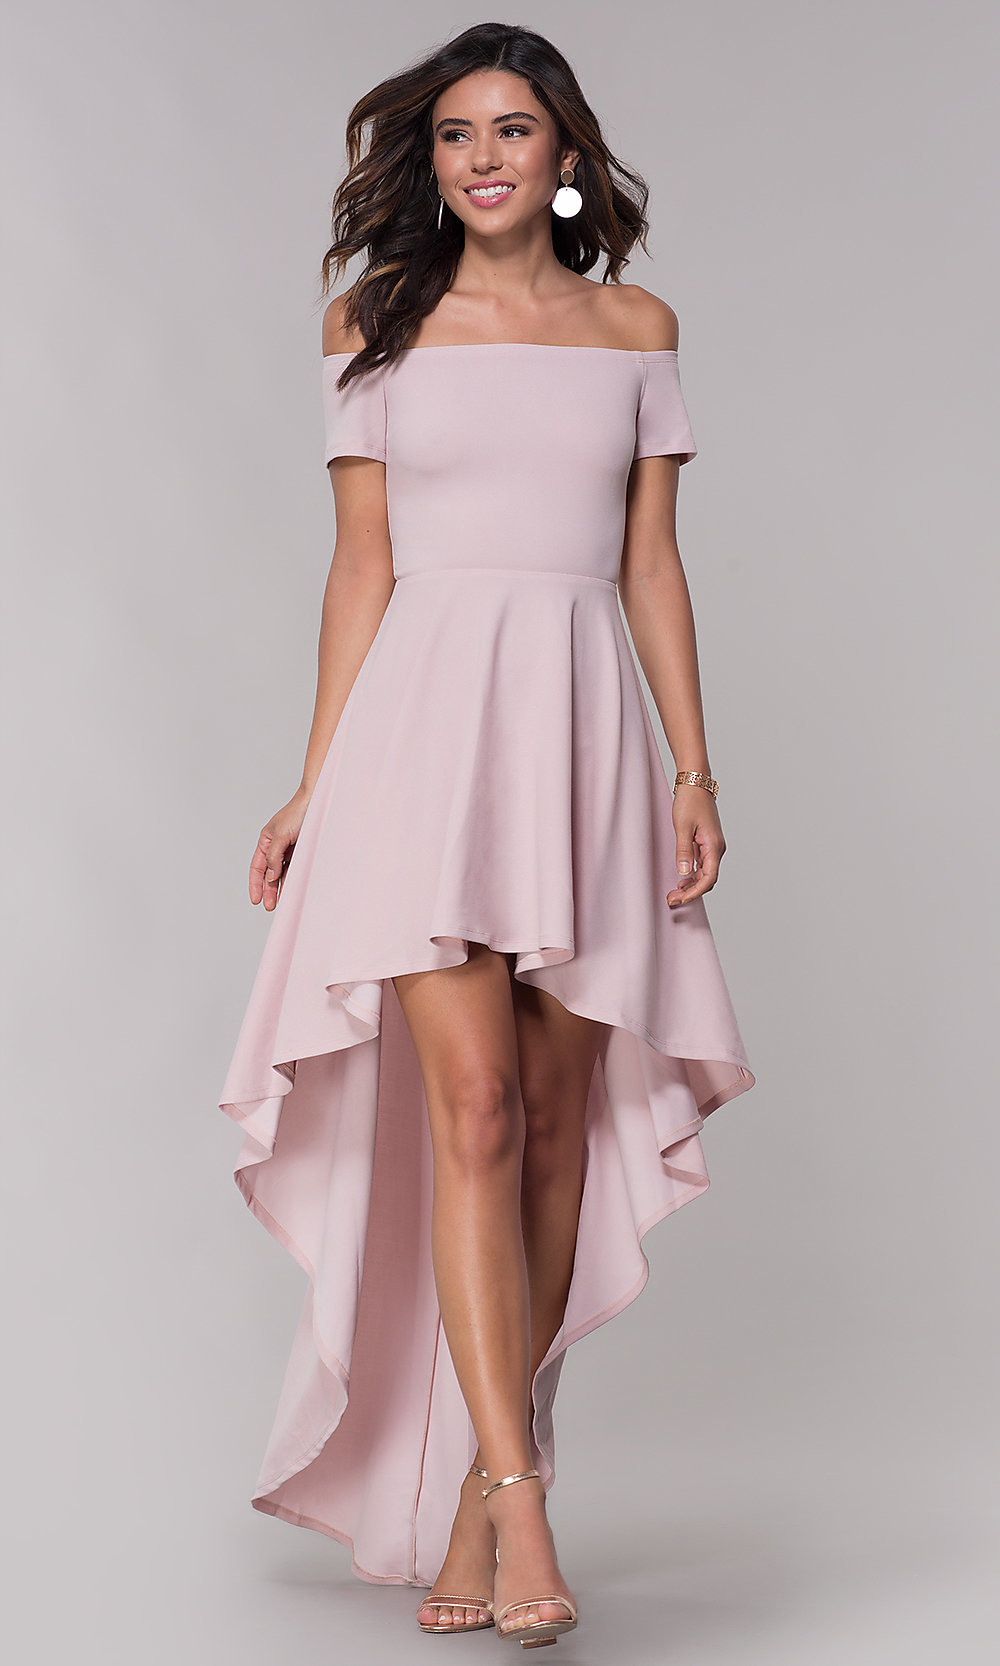 109f0f46ac6 Homecoming High-Low Off-the-Shoulder Party Dress